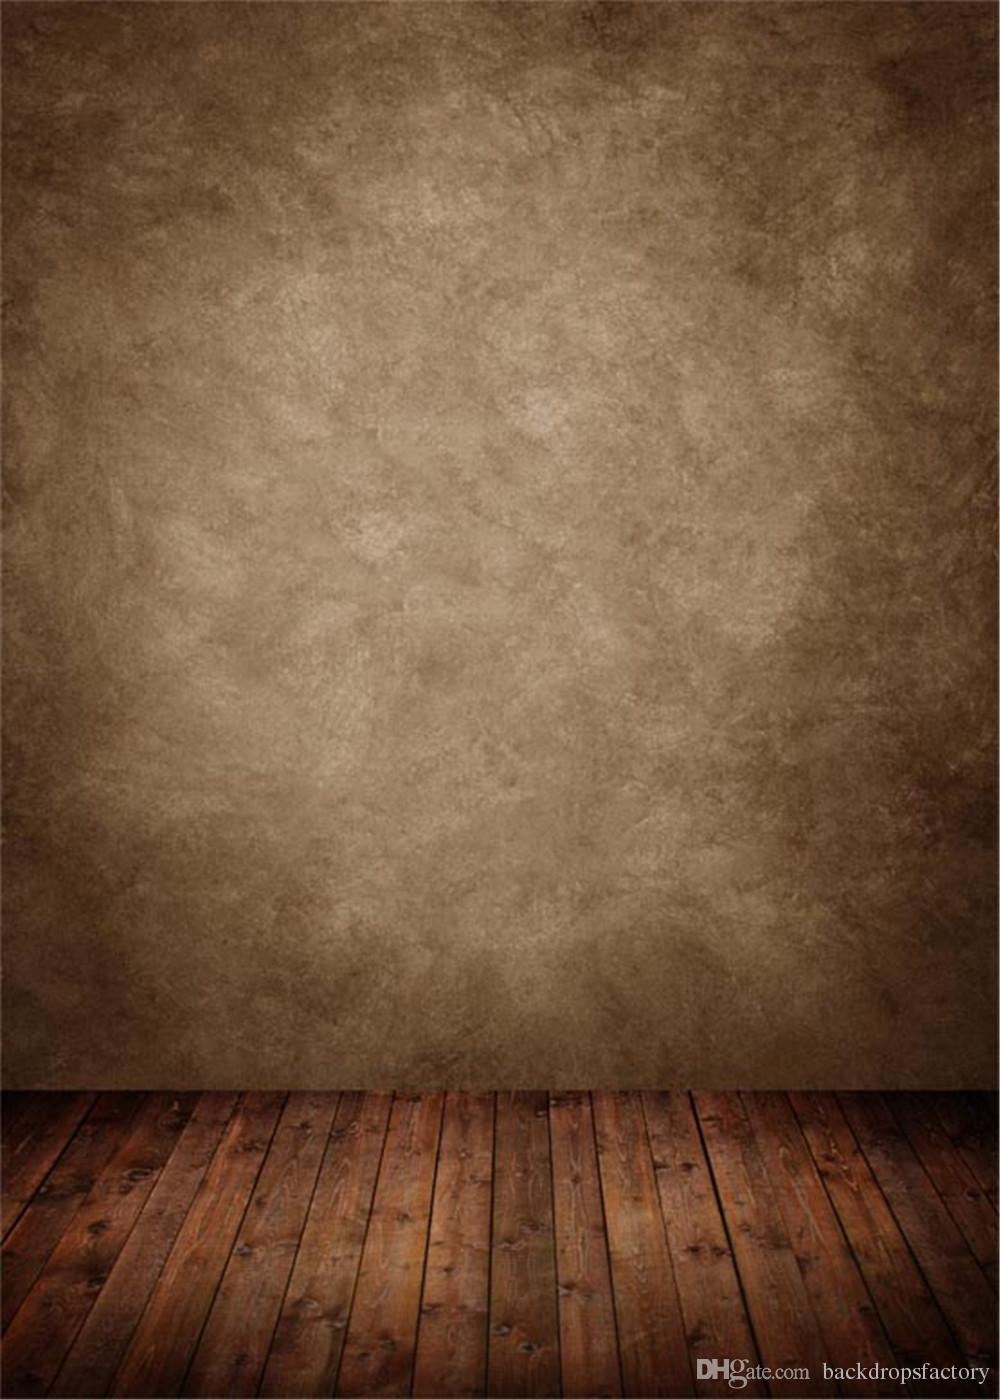 Vintage Brown Wall Photography Backdrop Dark Wooden